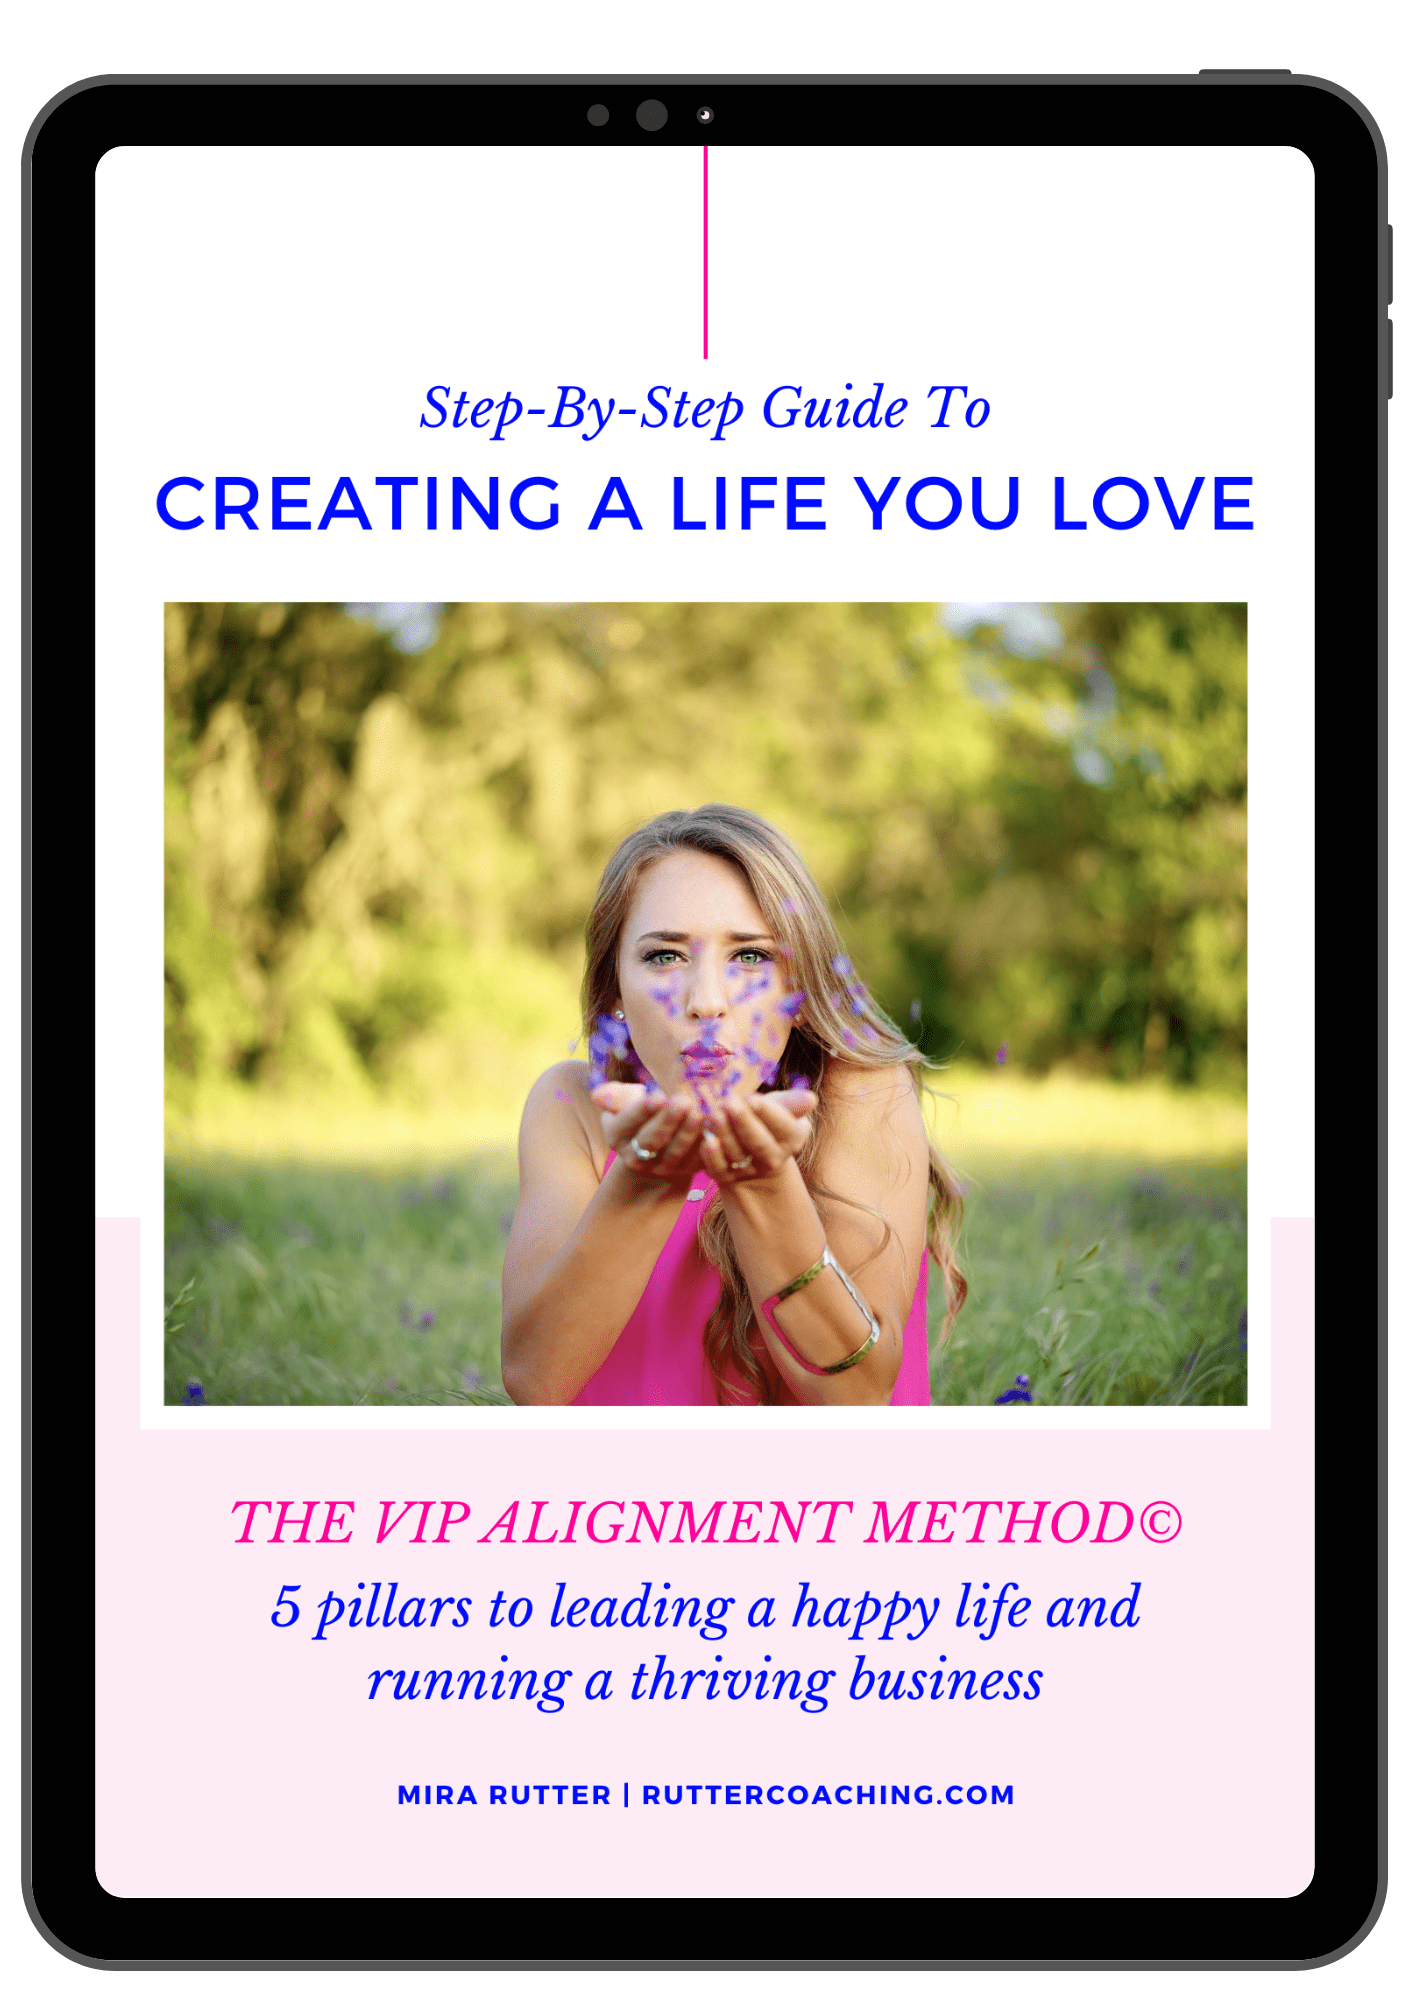 Step-By-Step Guide to Creating a Life You Love